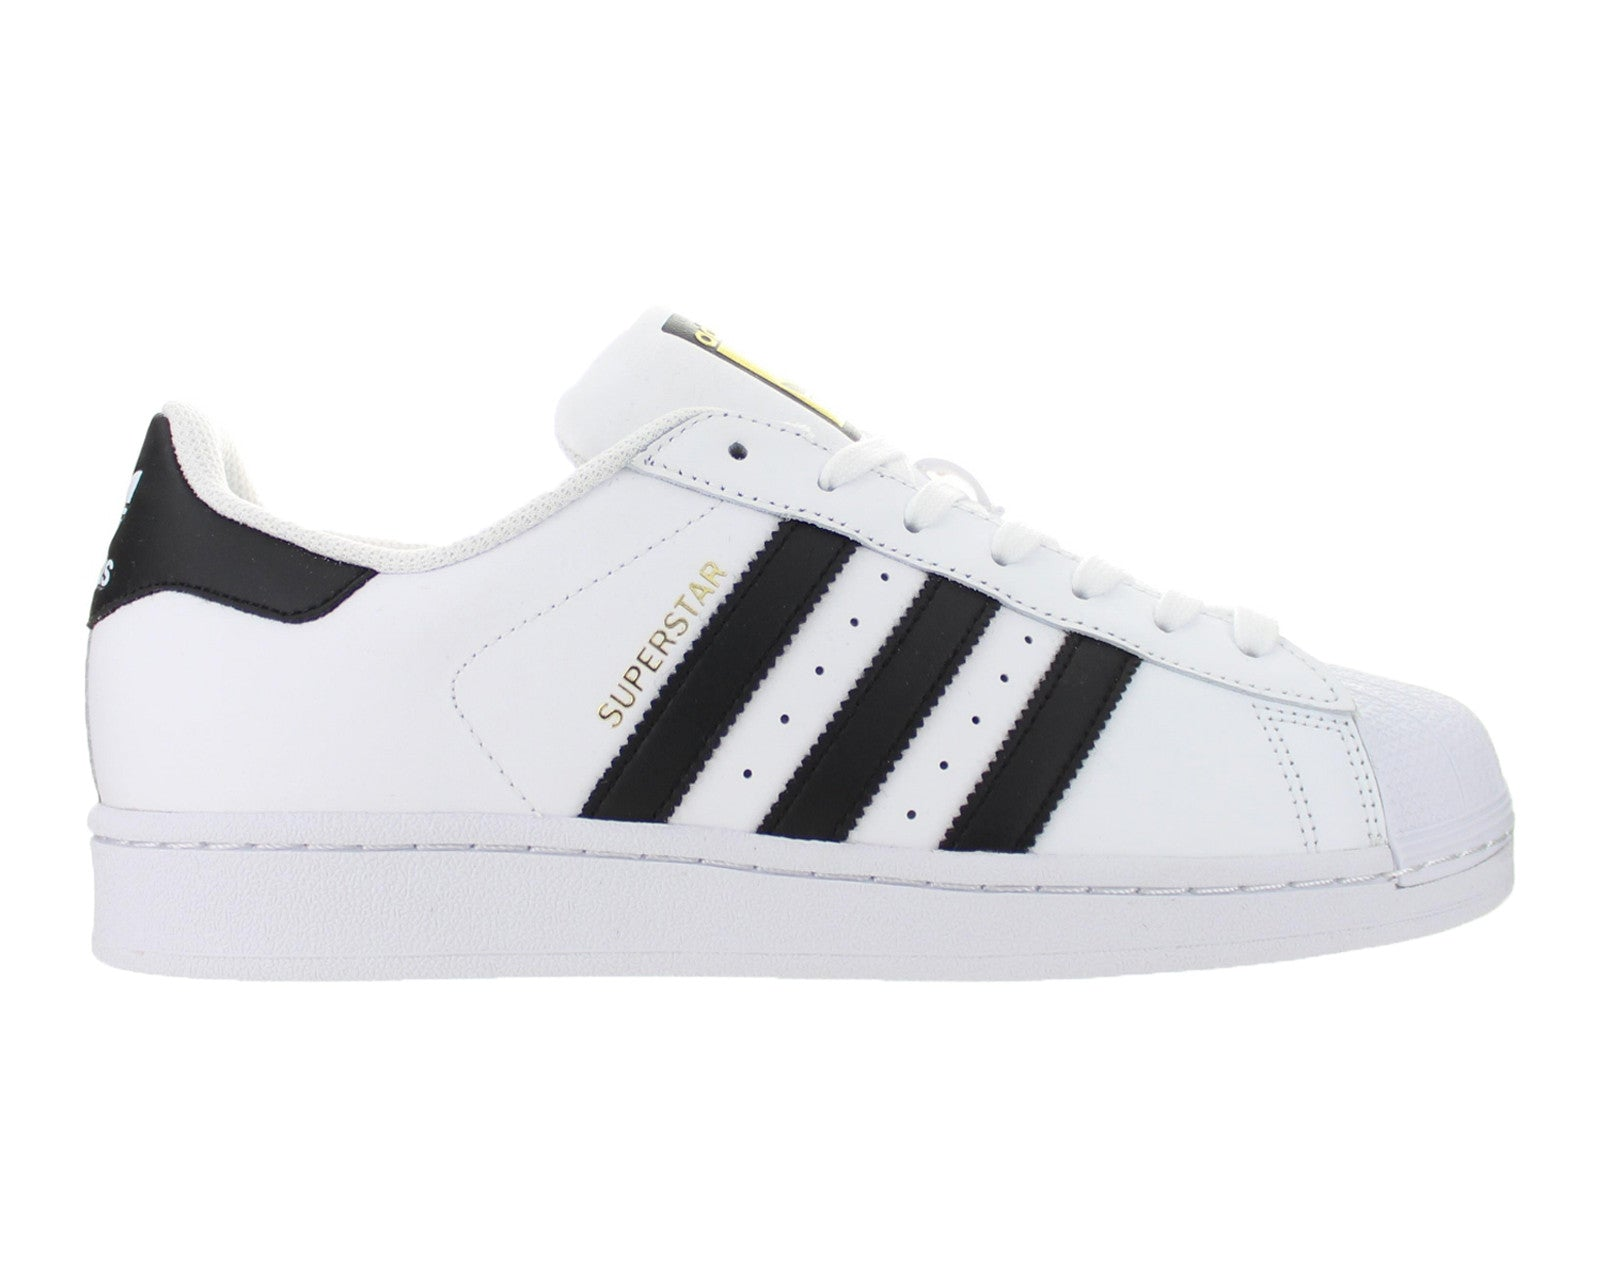 the best attitude 713f4 068bc Mens Adidas Superstar Adidas Originals White Black C77124